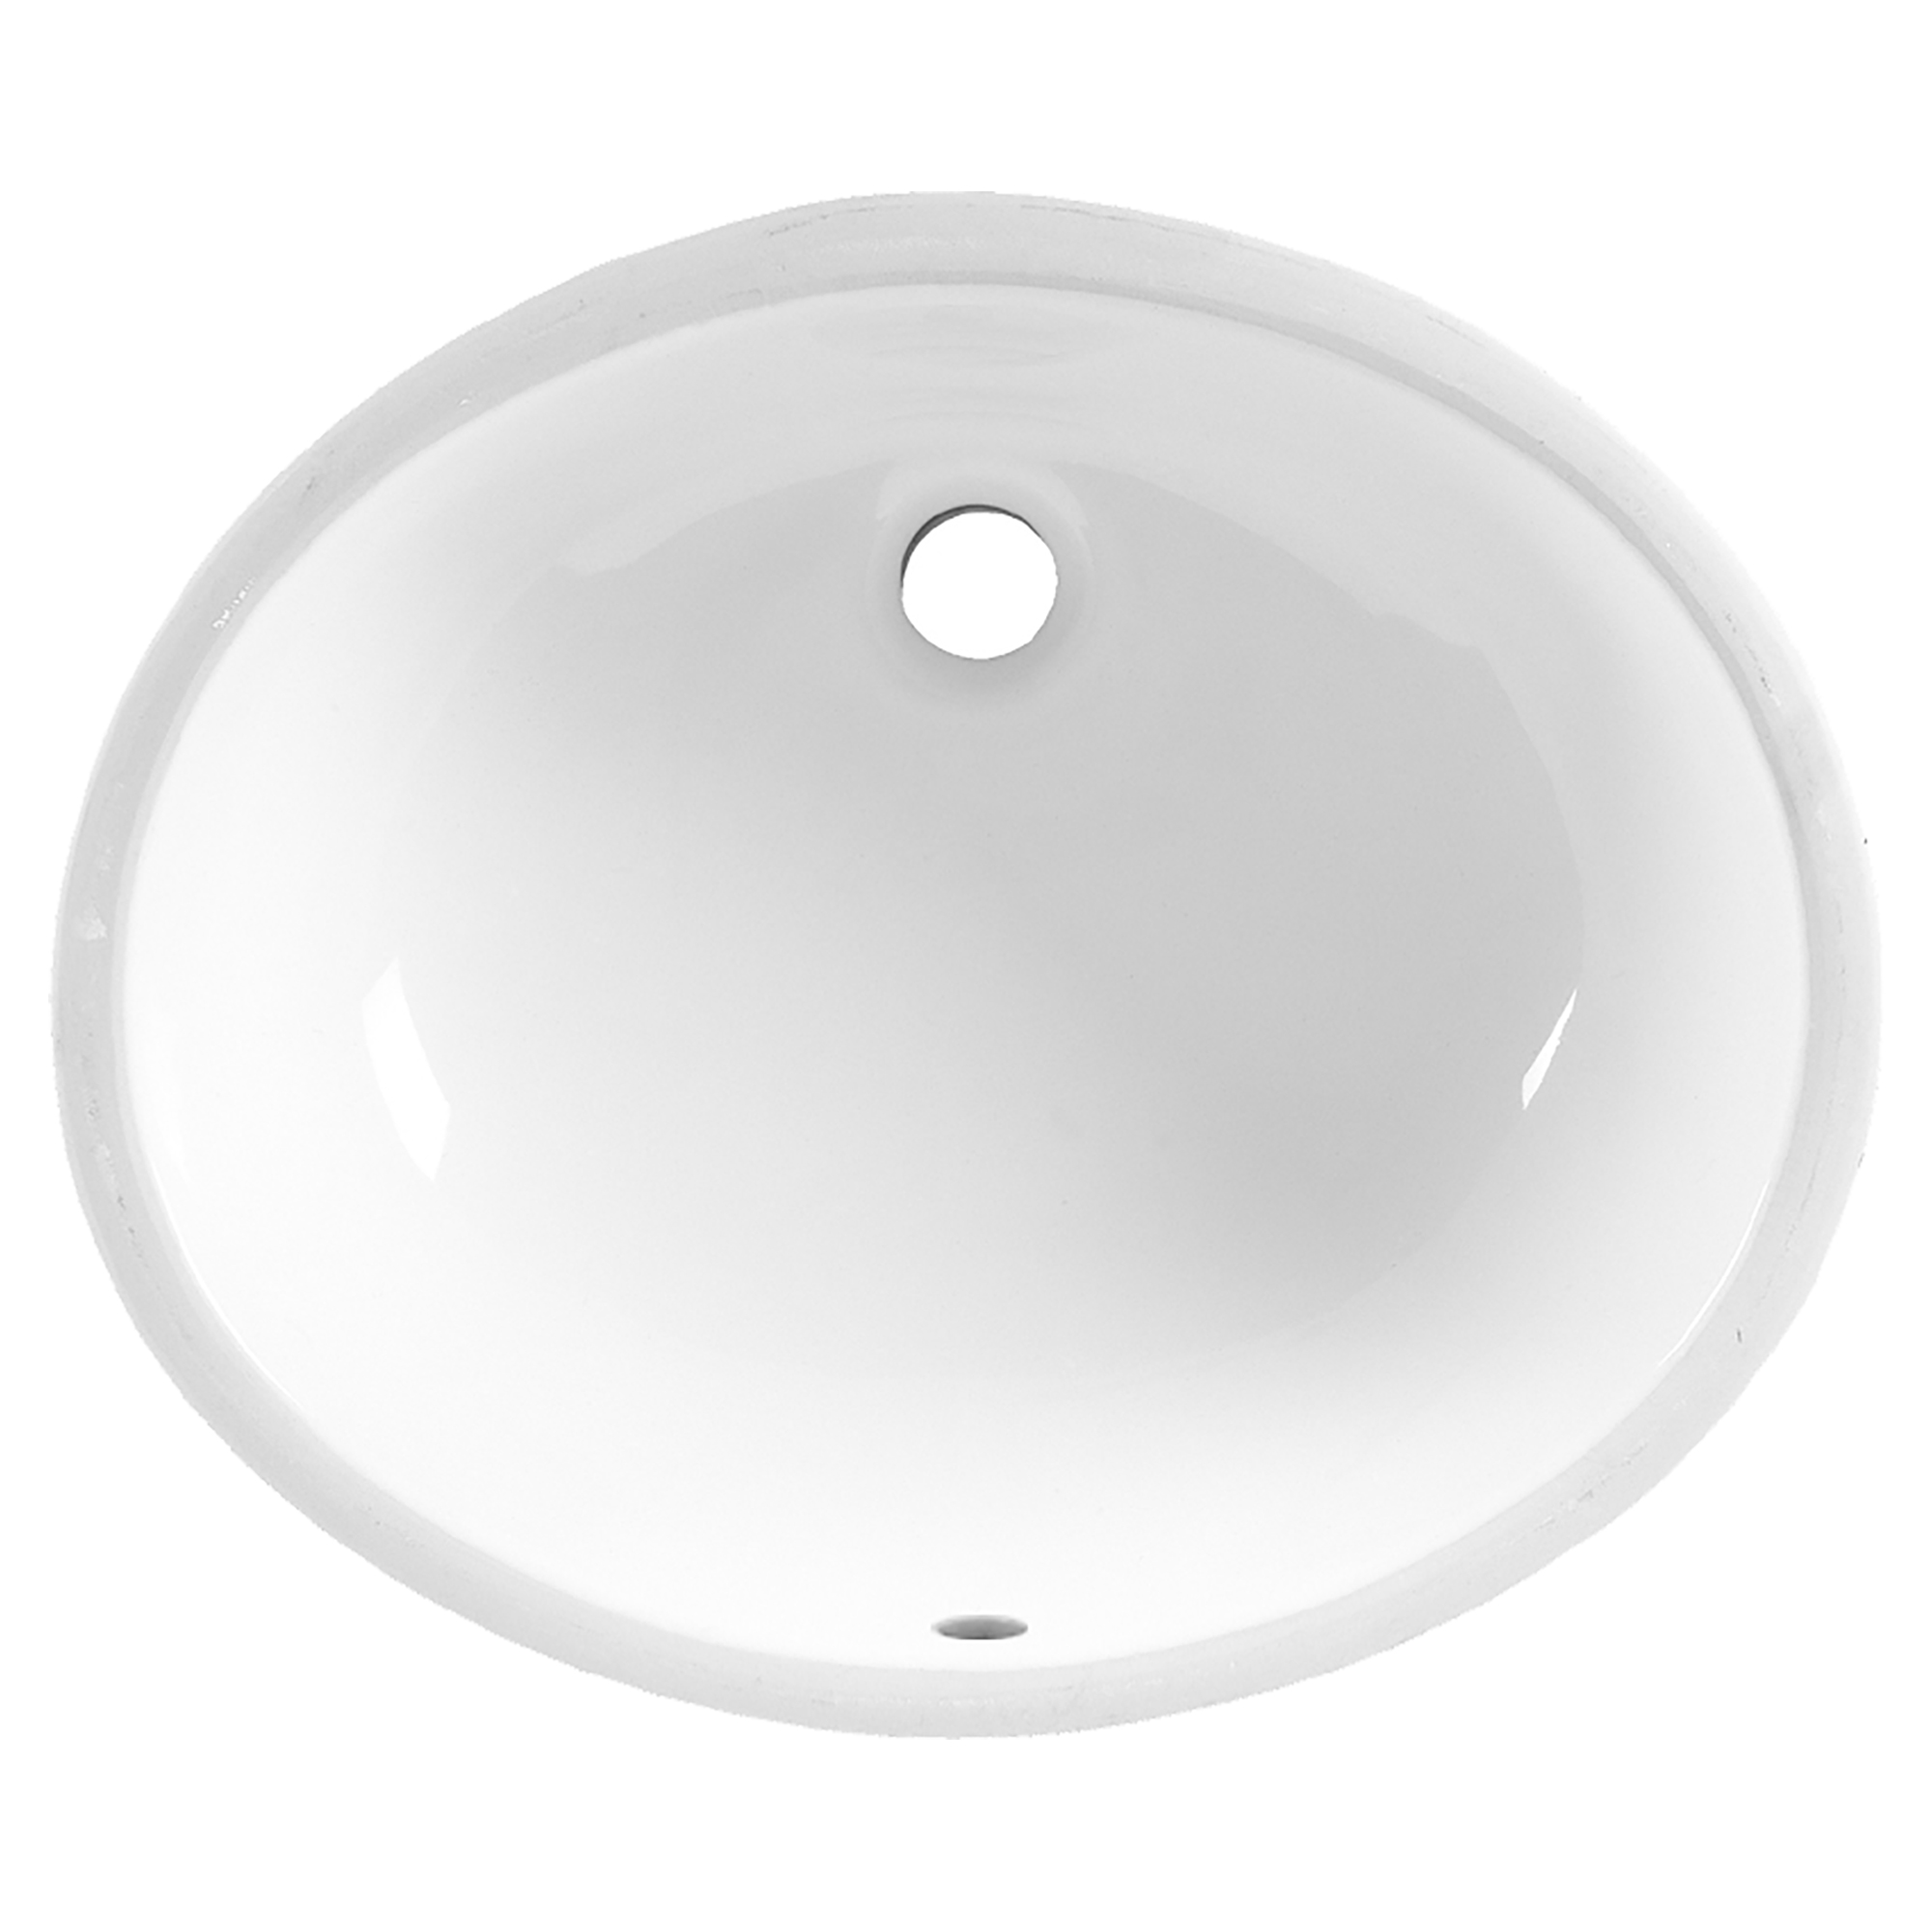 American Standard 0496.221.020 Ovalyn™ Bathroom Sink With Front Overflow, Classic Oval, 19-1/4 in W x 16-1/4 in D x 7-3/16 in H, Undercounter Mount, Vitreous China, White, Import